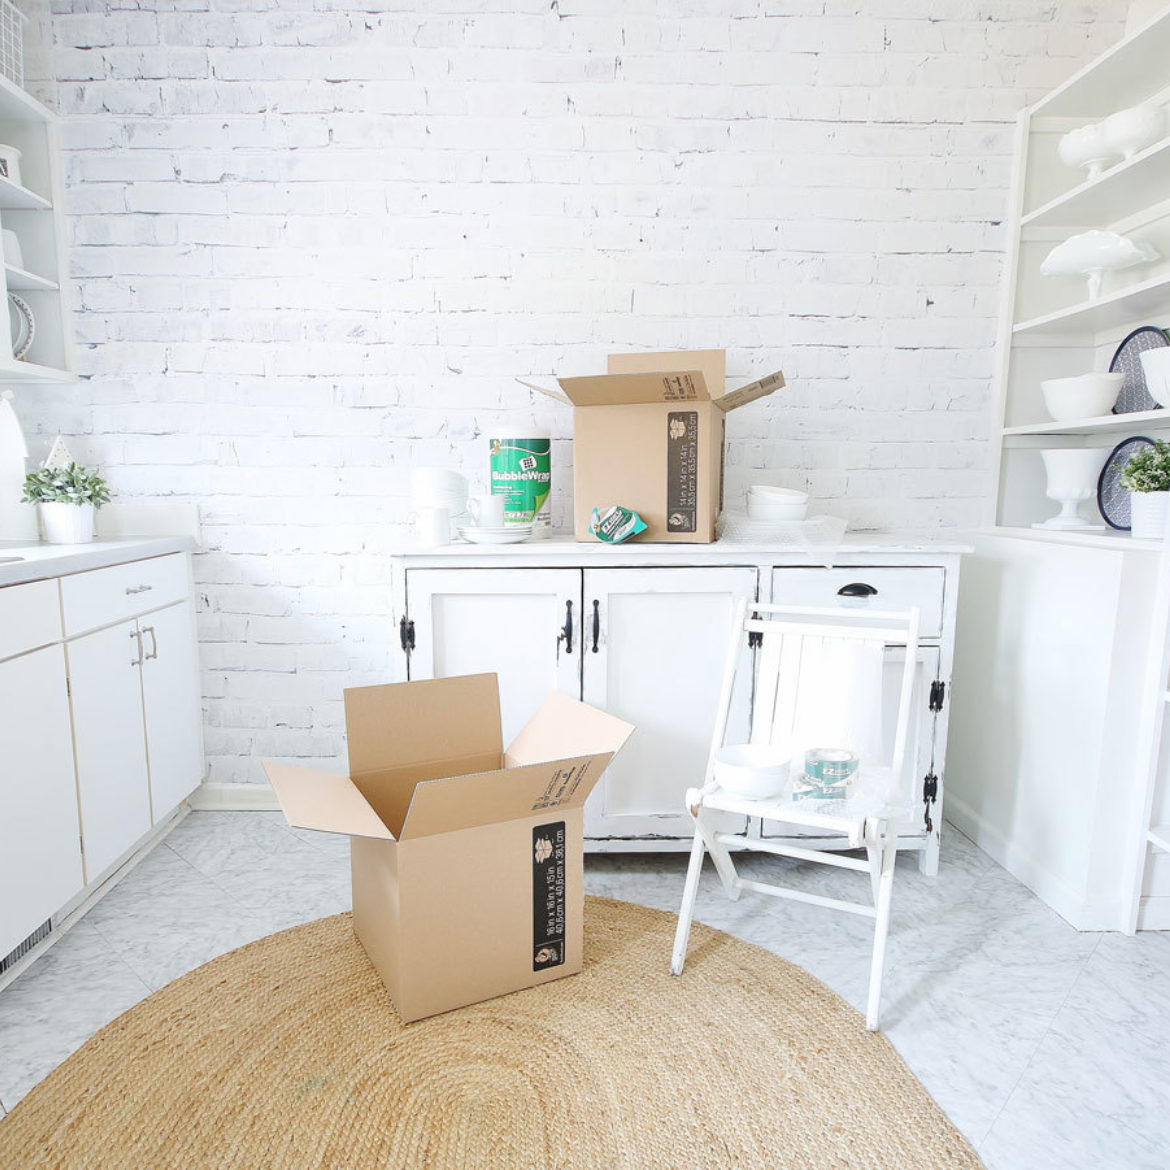 High Res Kitchen Packing Boxes